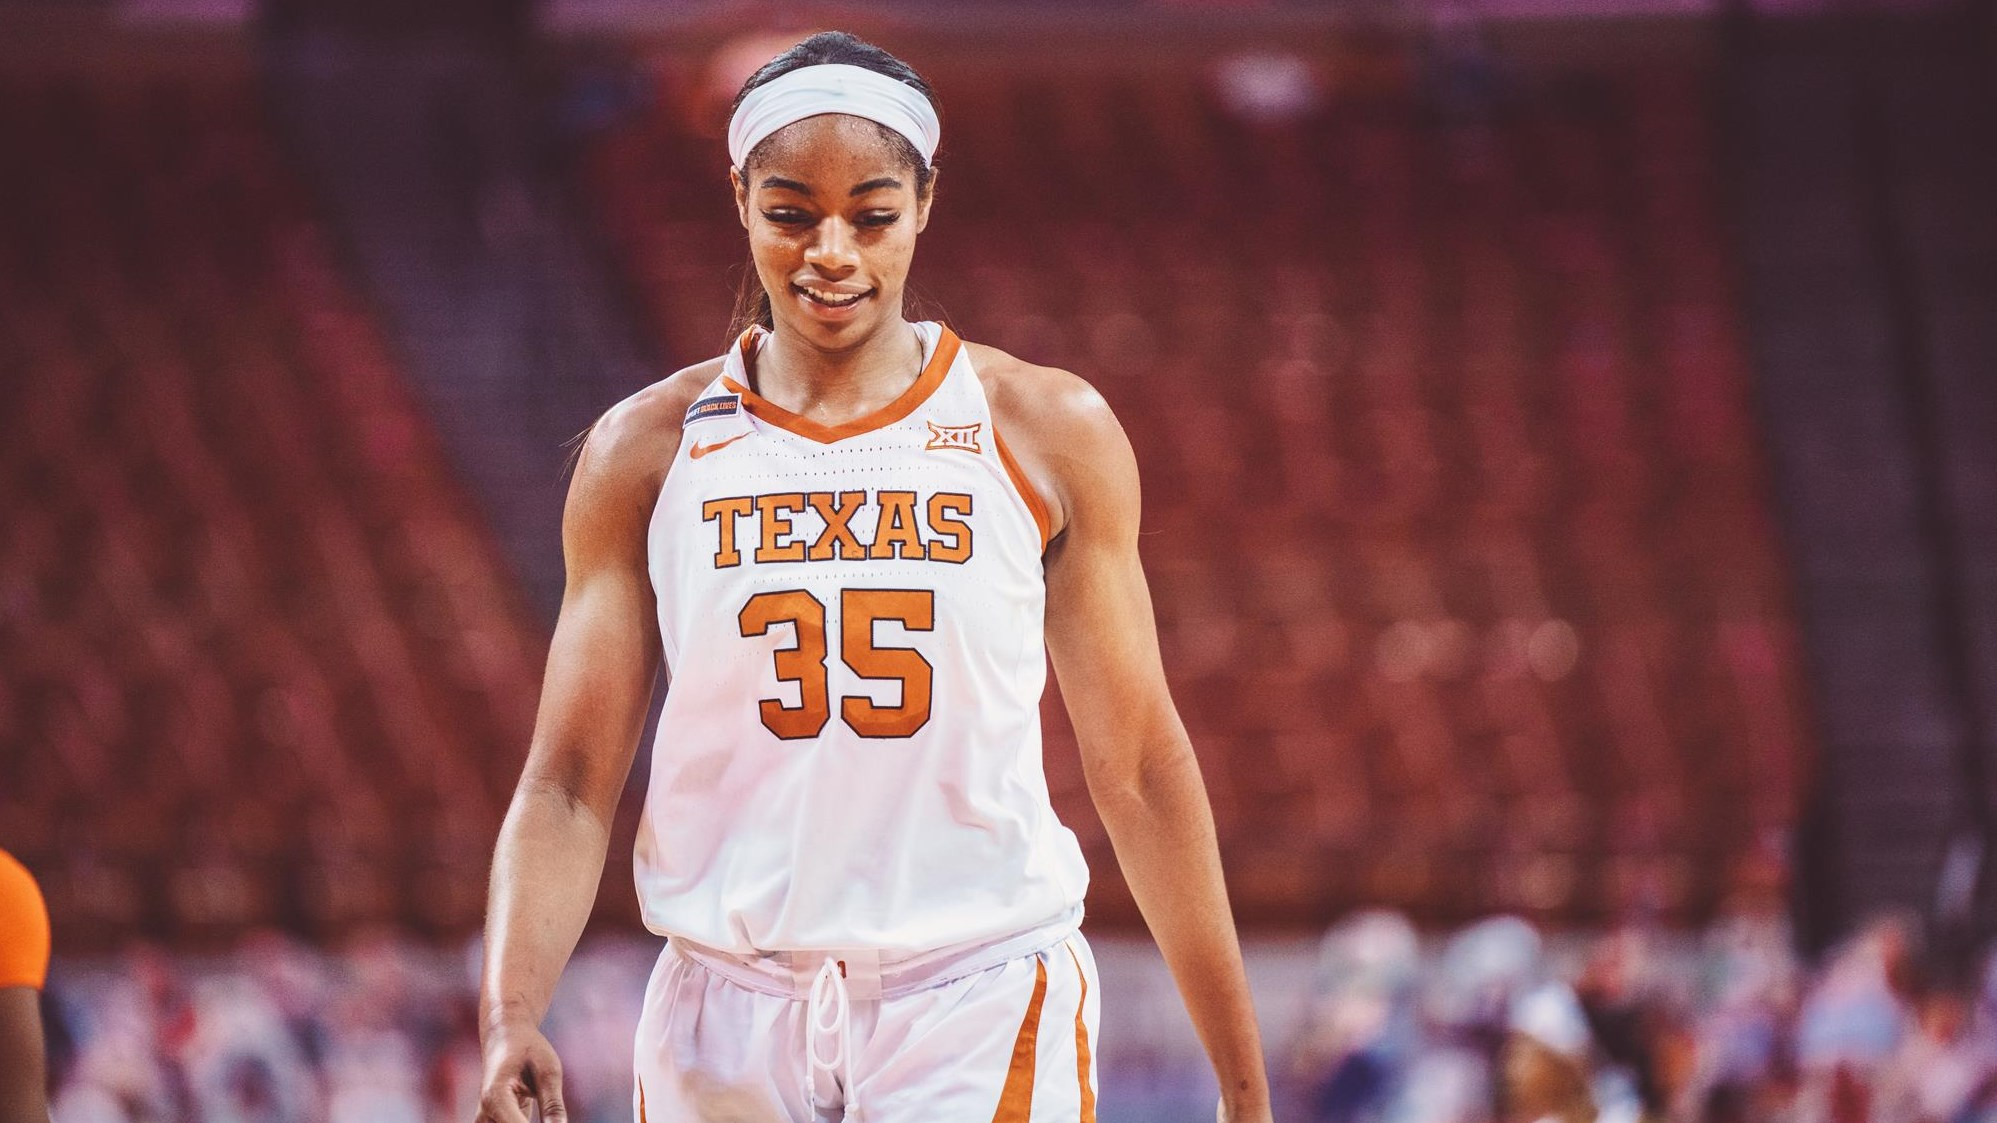 Dallas selects Texas' Charli Collier as the first pick of the 2021 WNBA Draft; Finnish phenom Awak Kuier goes second